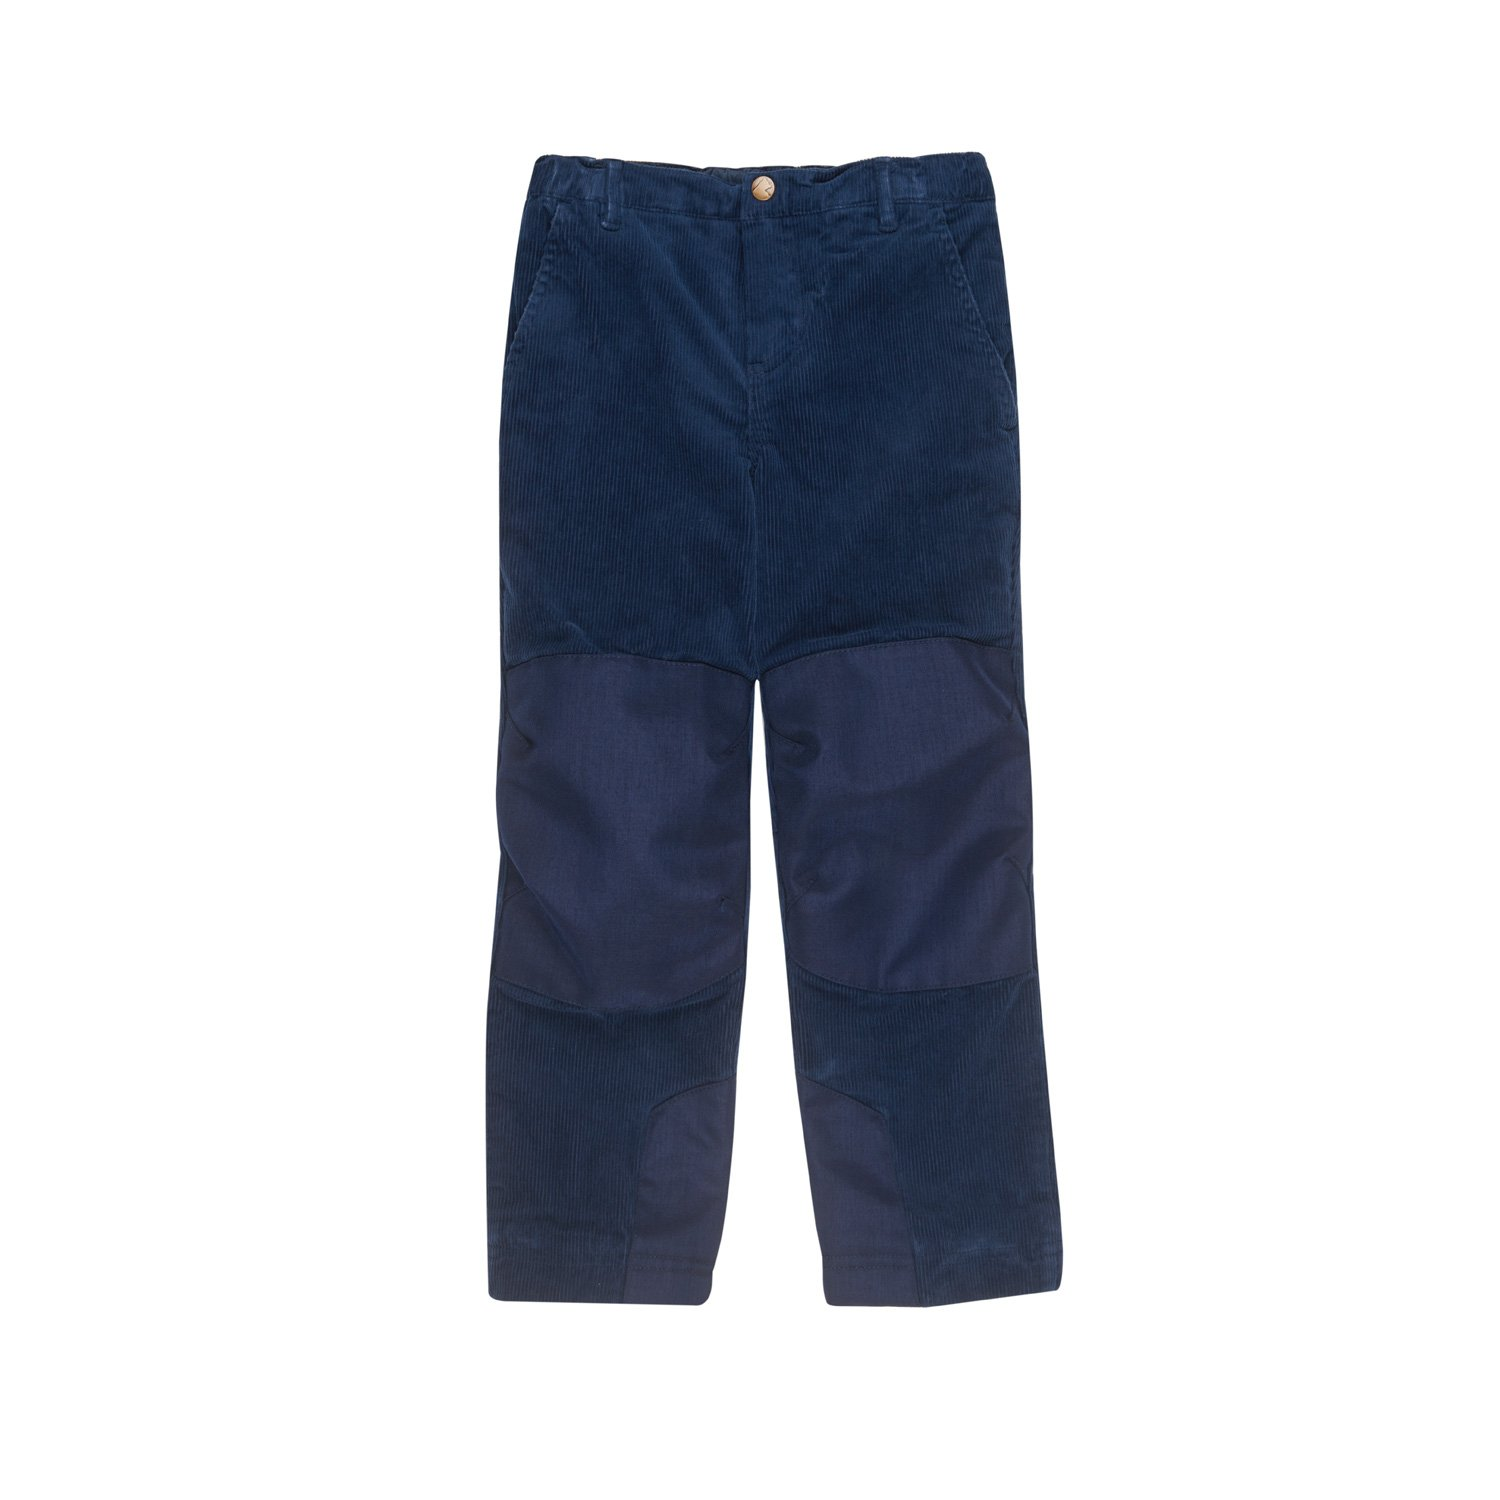 Finkid Kuukkeli denim navy Kinder Outdoor Kord Winterhose